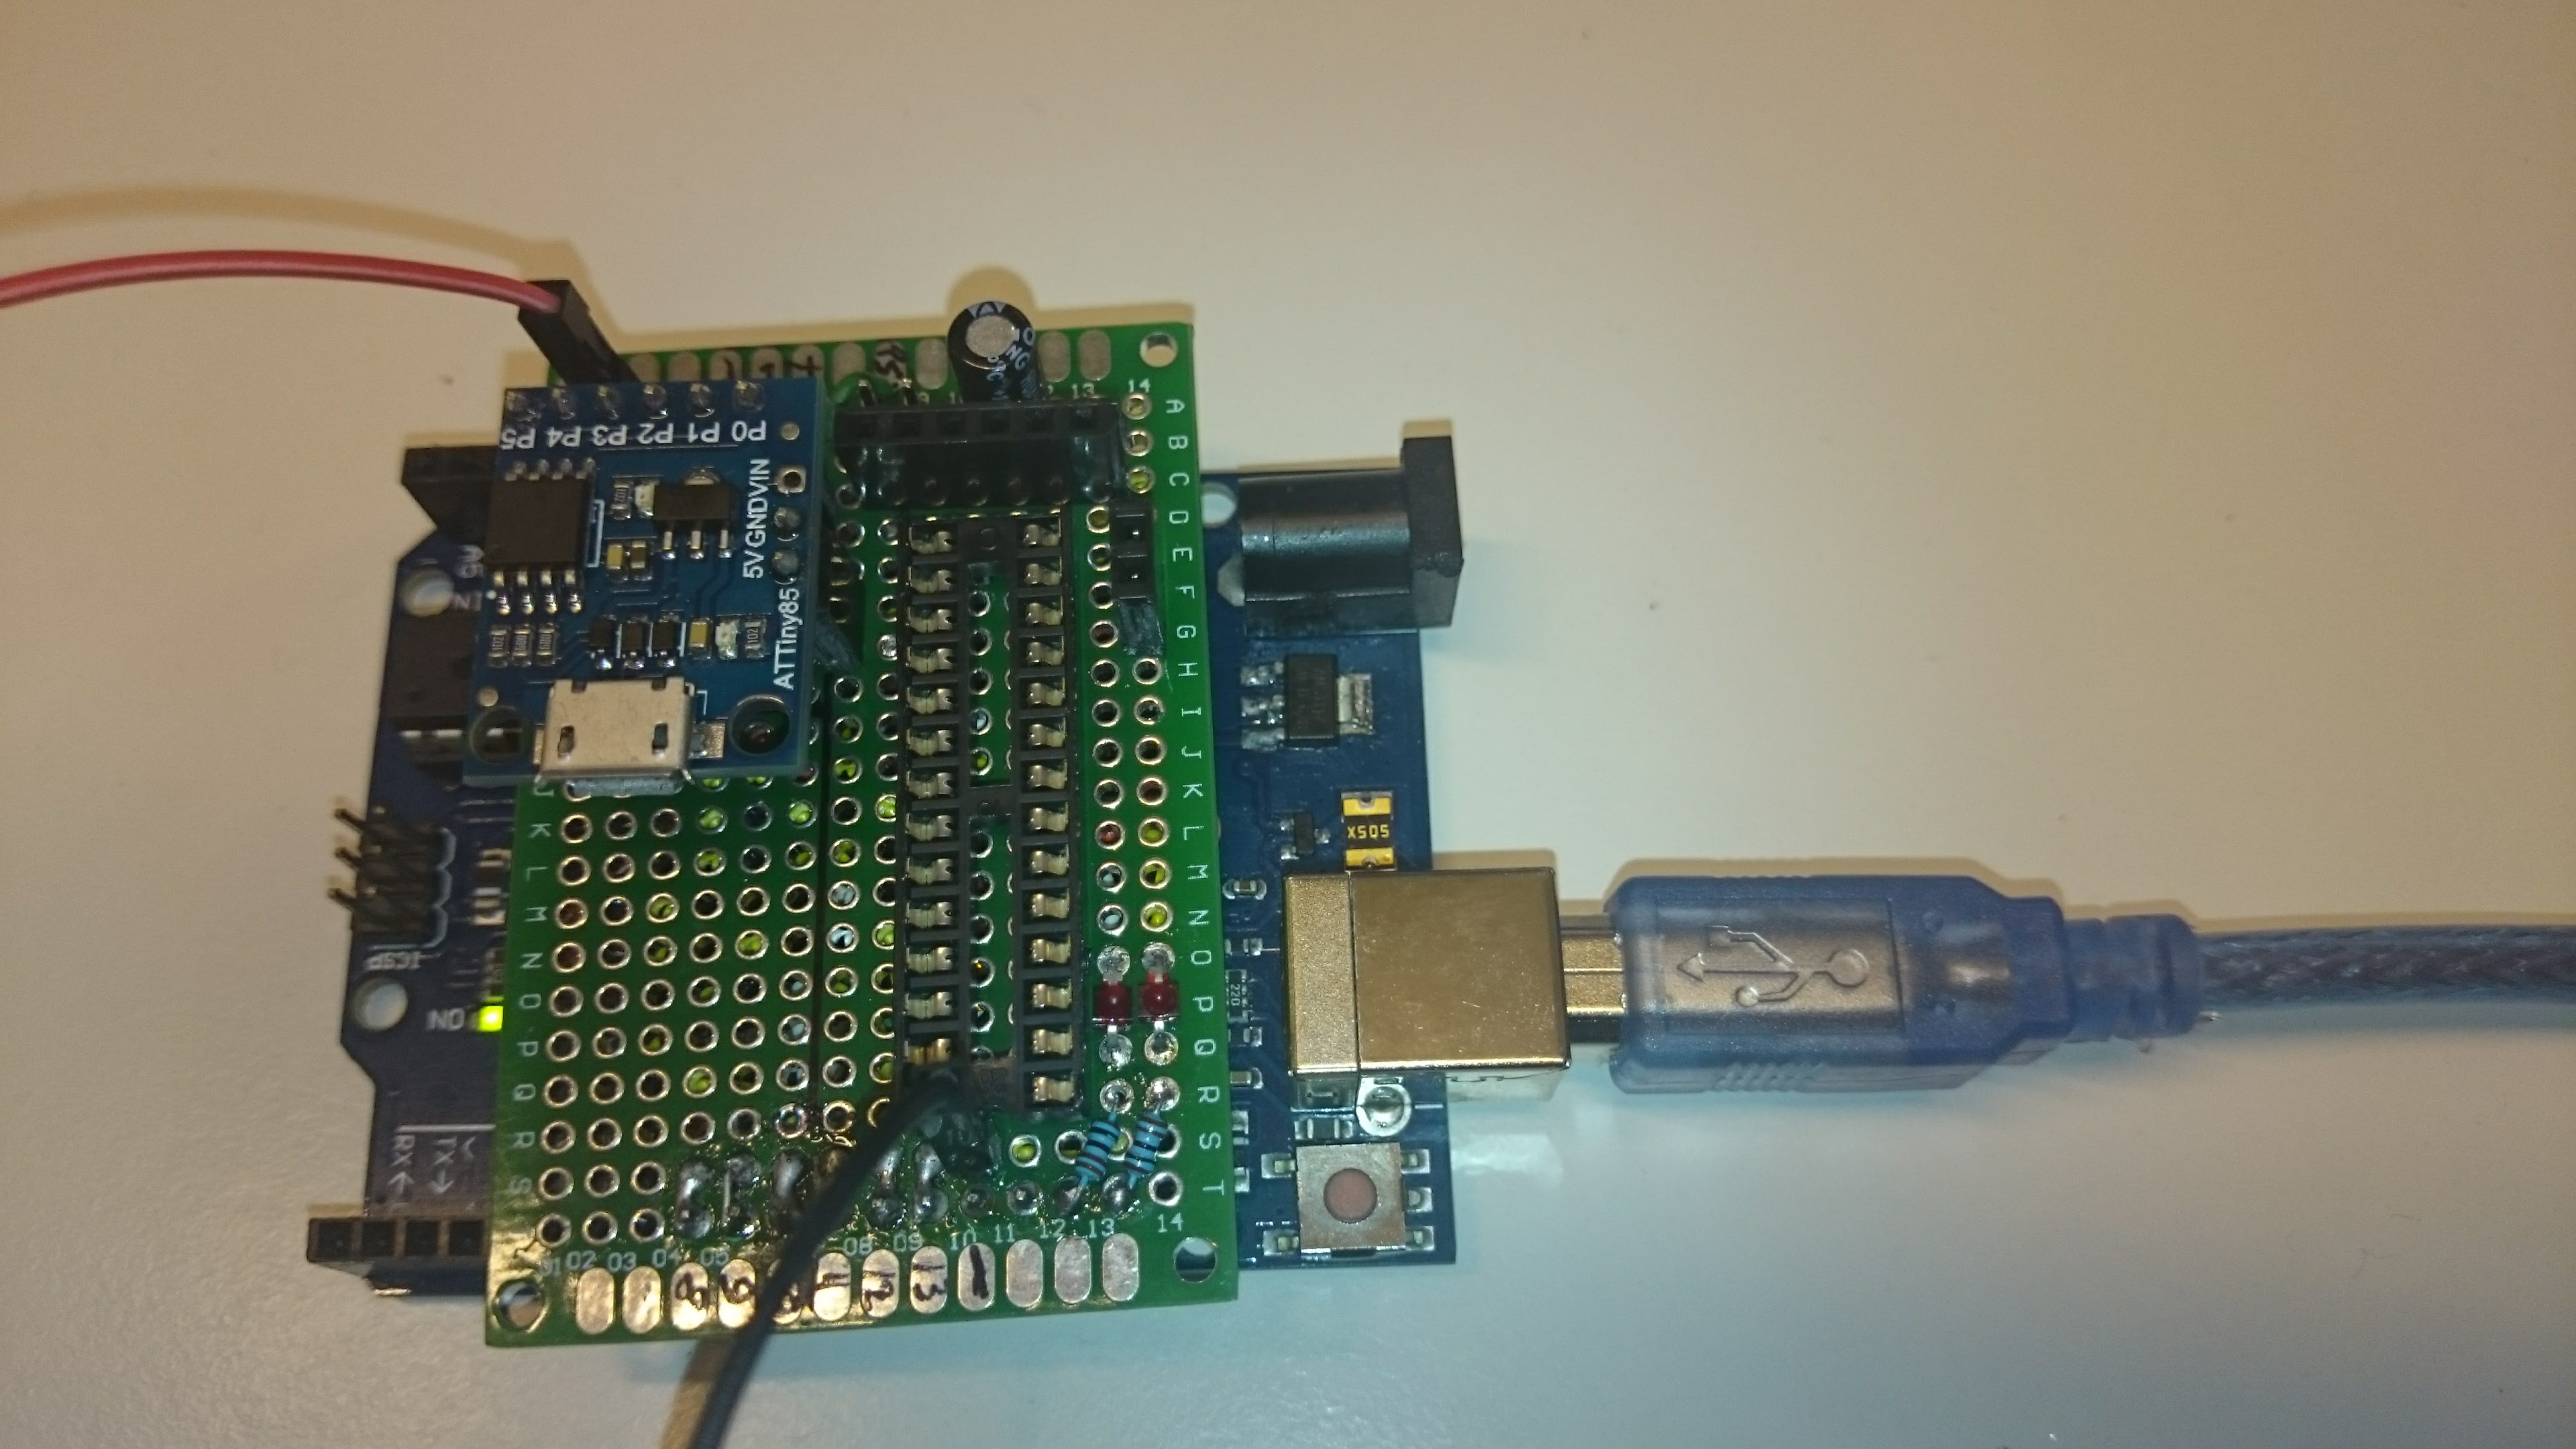 How to unlock Digispark ATtiny85 and convert it to a Trinket